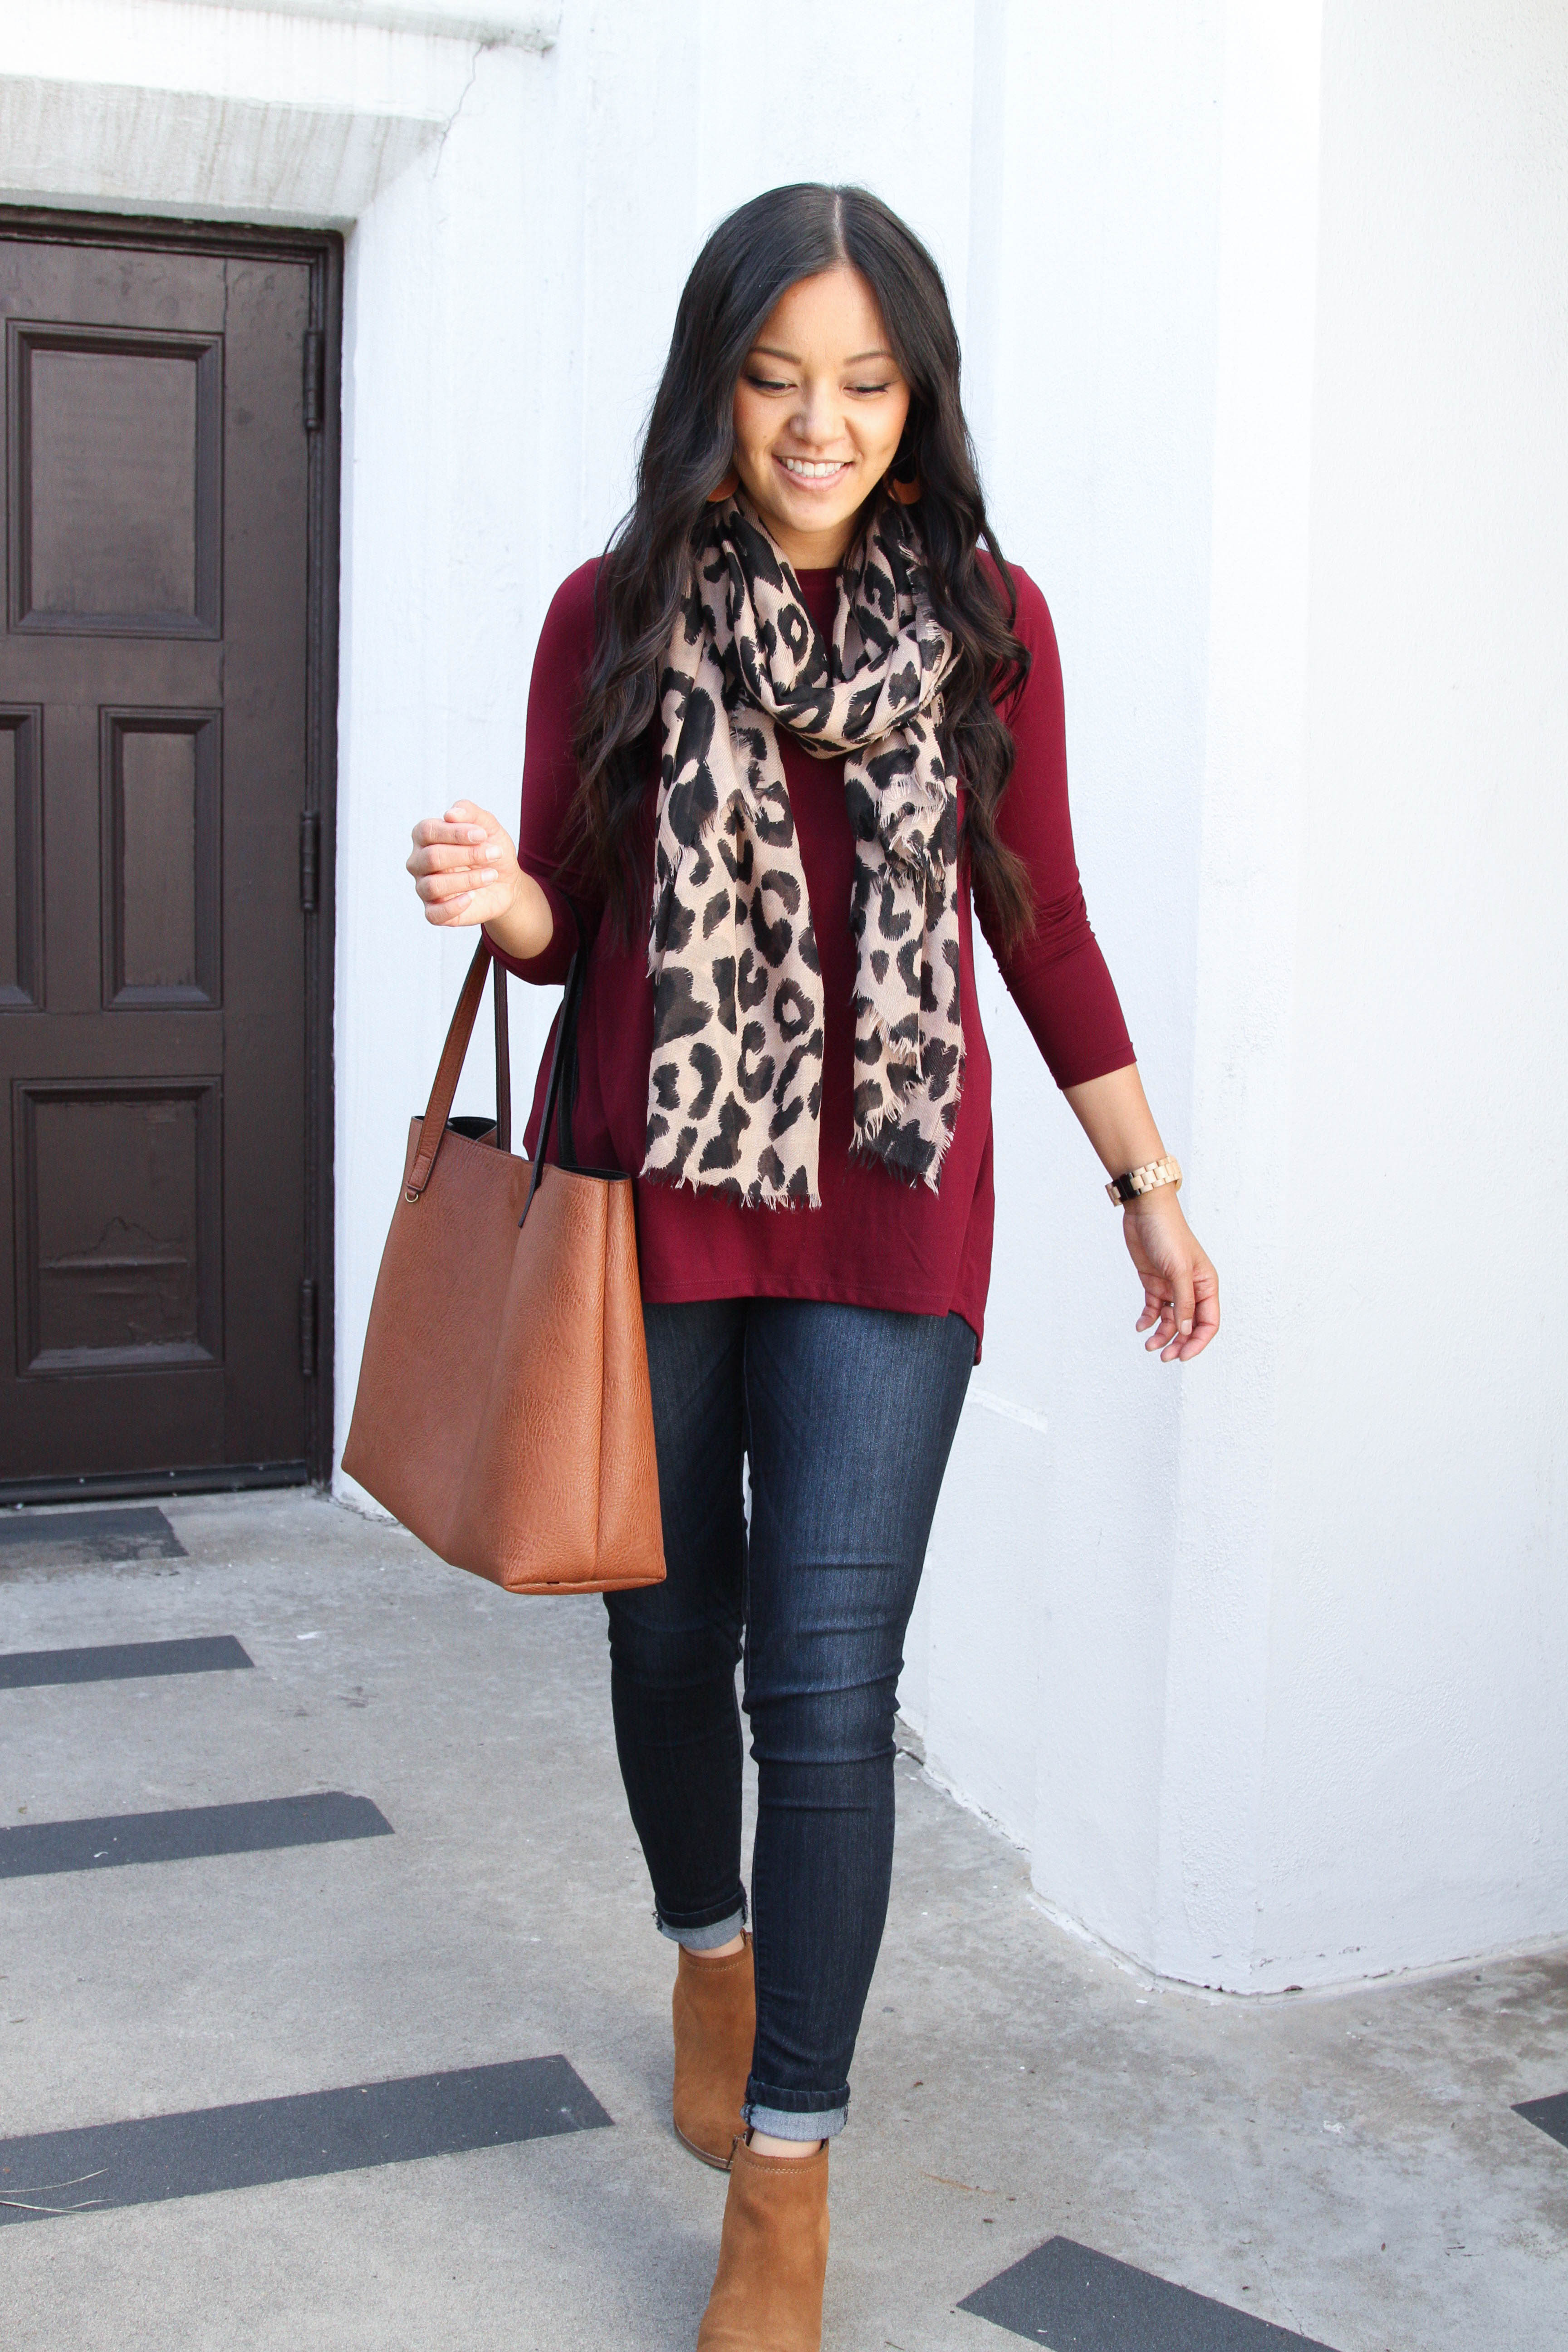 78e15d24e4 Scarf – A leopard scarf is a great way to add some pizzazz to an outfit.  With a leopard scarf